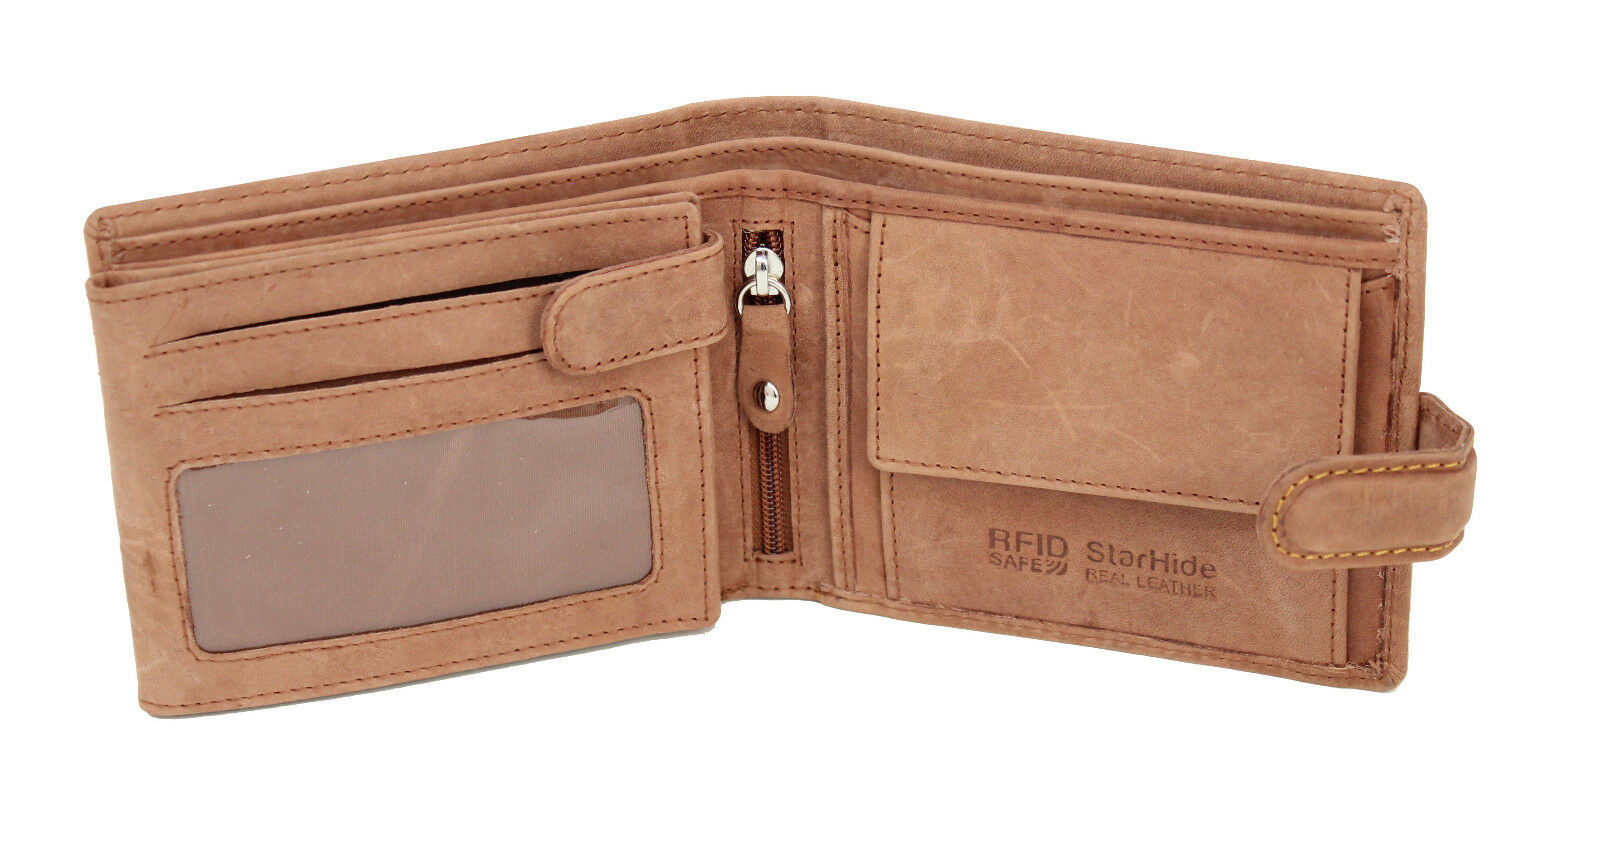 RFID NFC Blocking Mens Leather Zip Up Wallet 9 Credit Cards Gift Box Boxed R184M